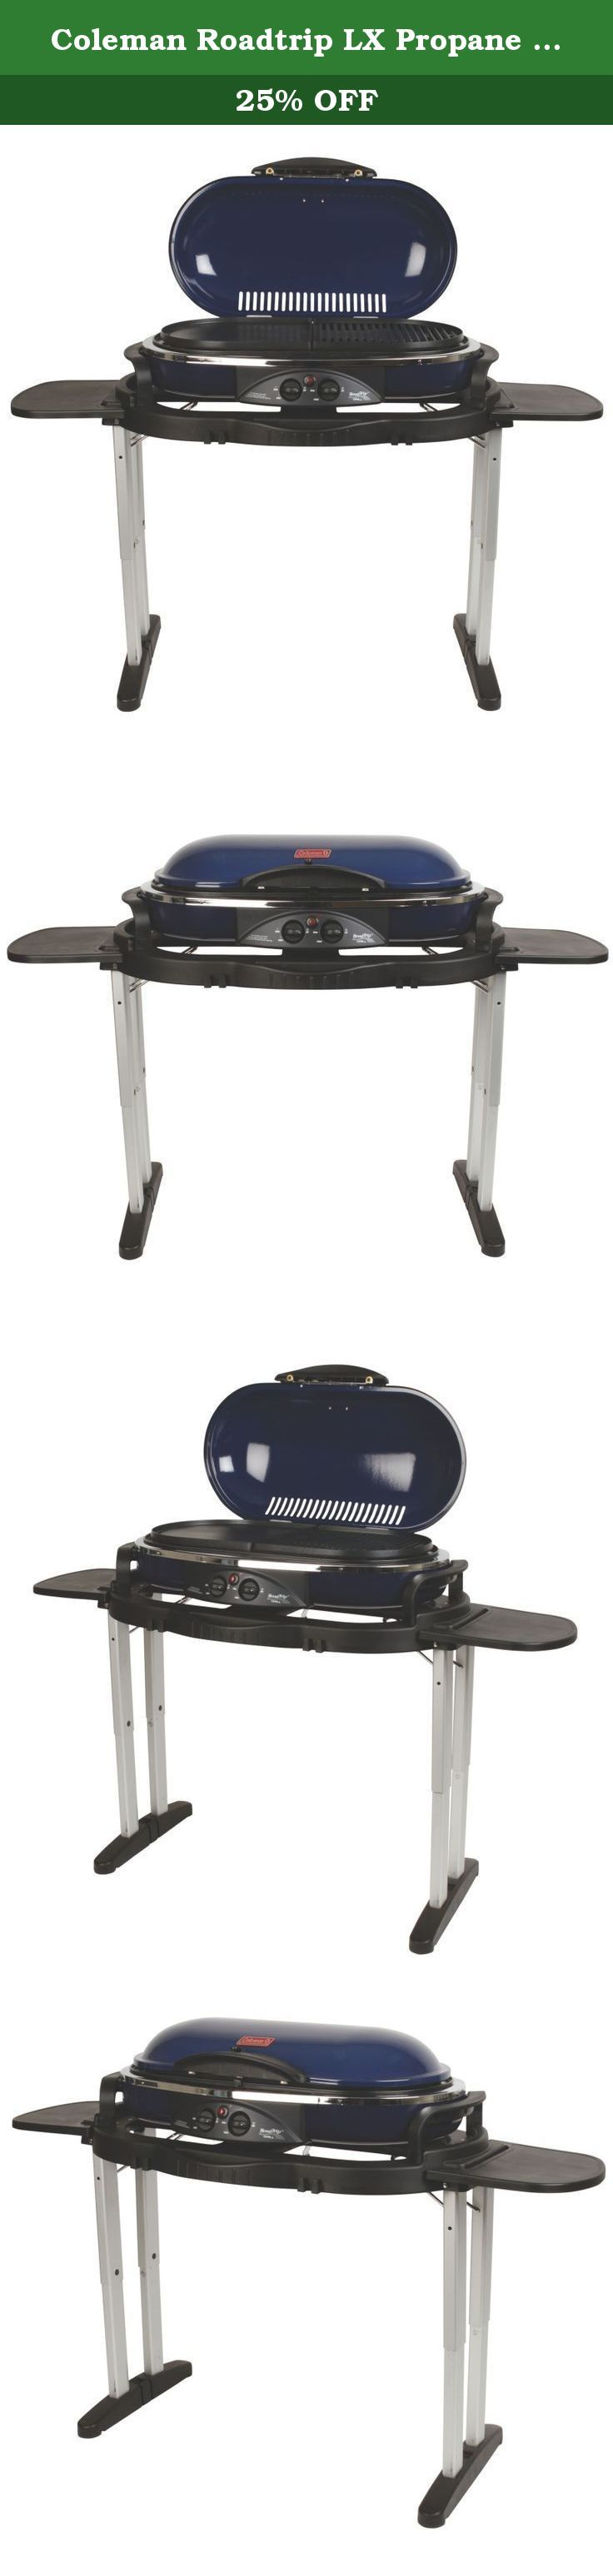 1000 ideas about table top grill on pinterest bbq table - Coleman small spaces bbq decoration ...